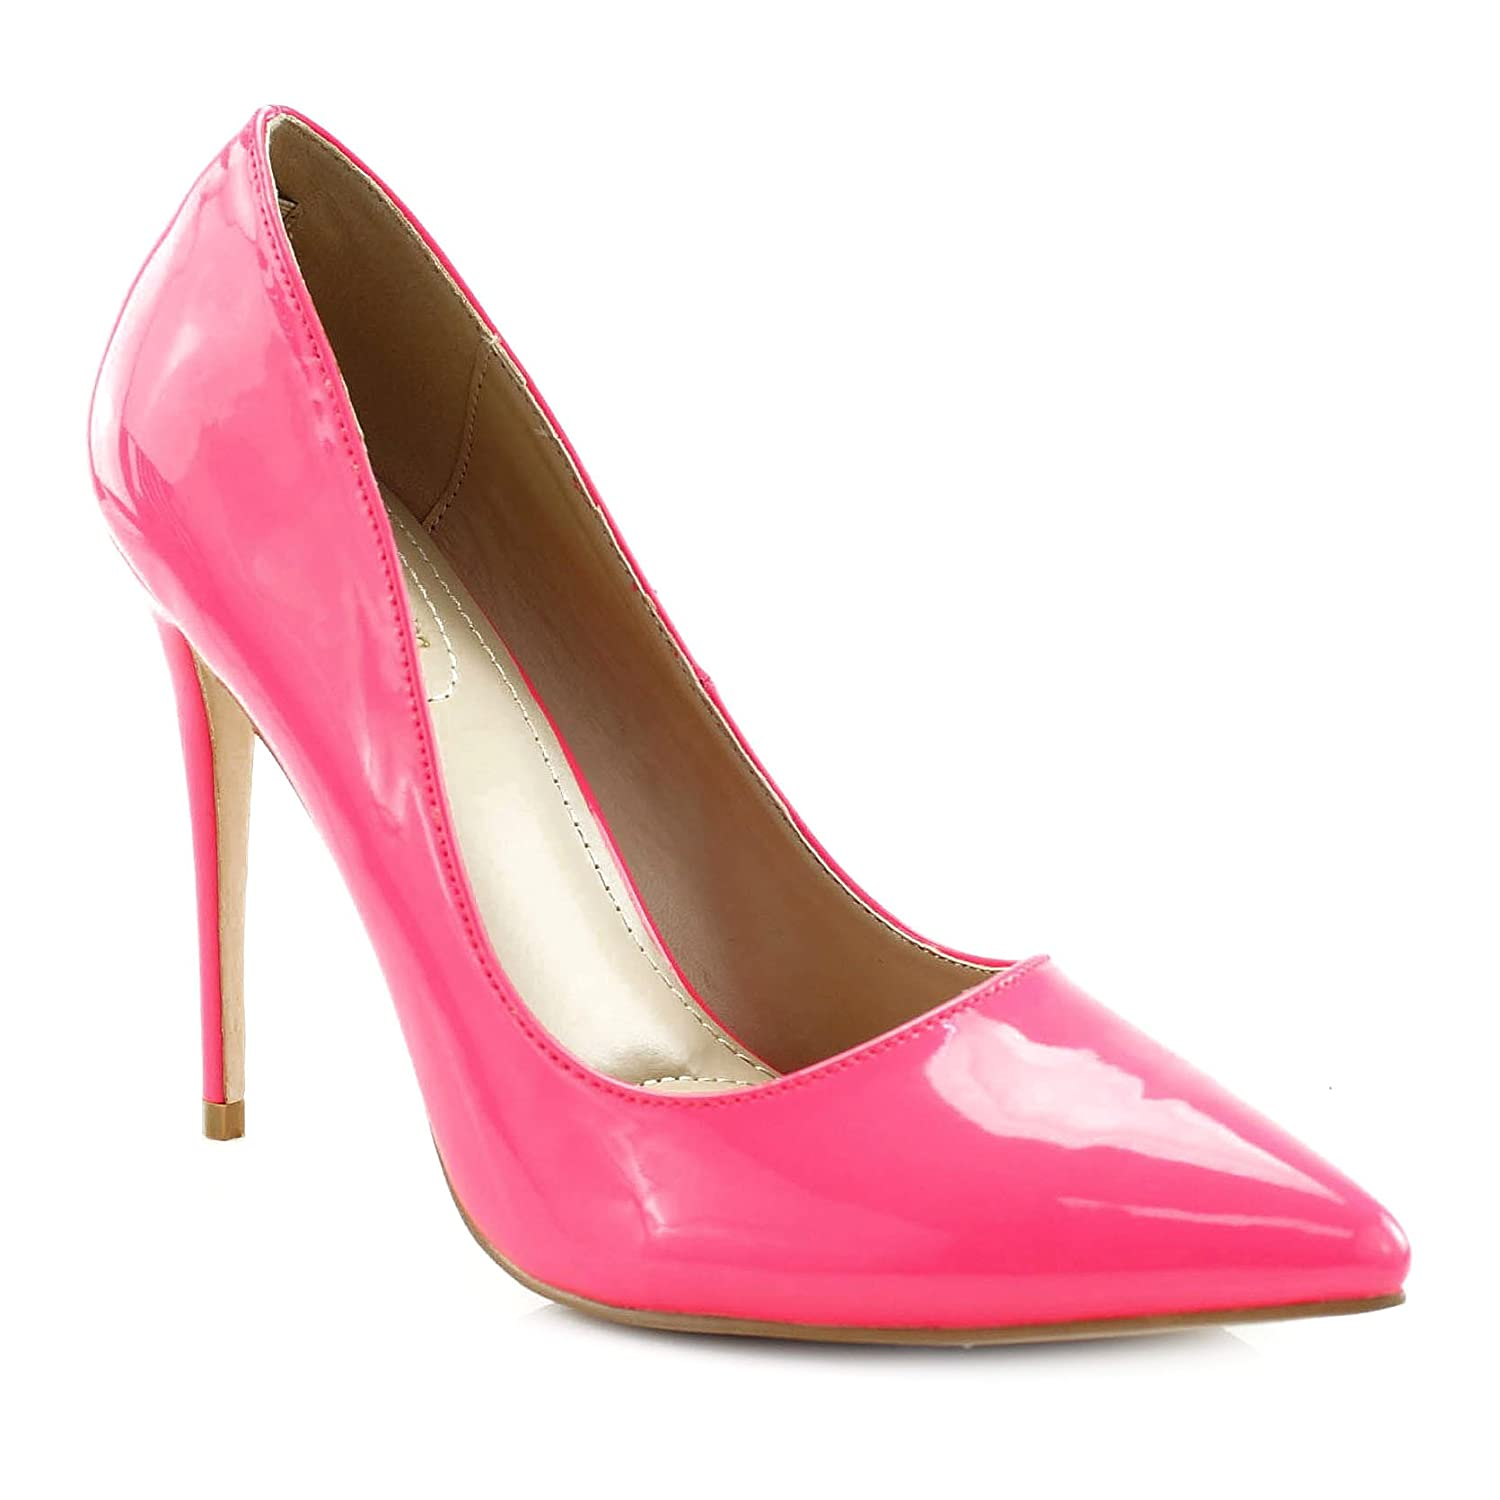 98953309391b4 FOREVER VOGUE Women's Closed Pointed Toe Classic High Stiletto Heels Slip  On Pumps Office Business Wedding Party Shoes